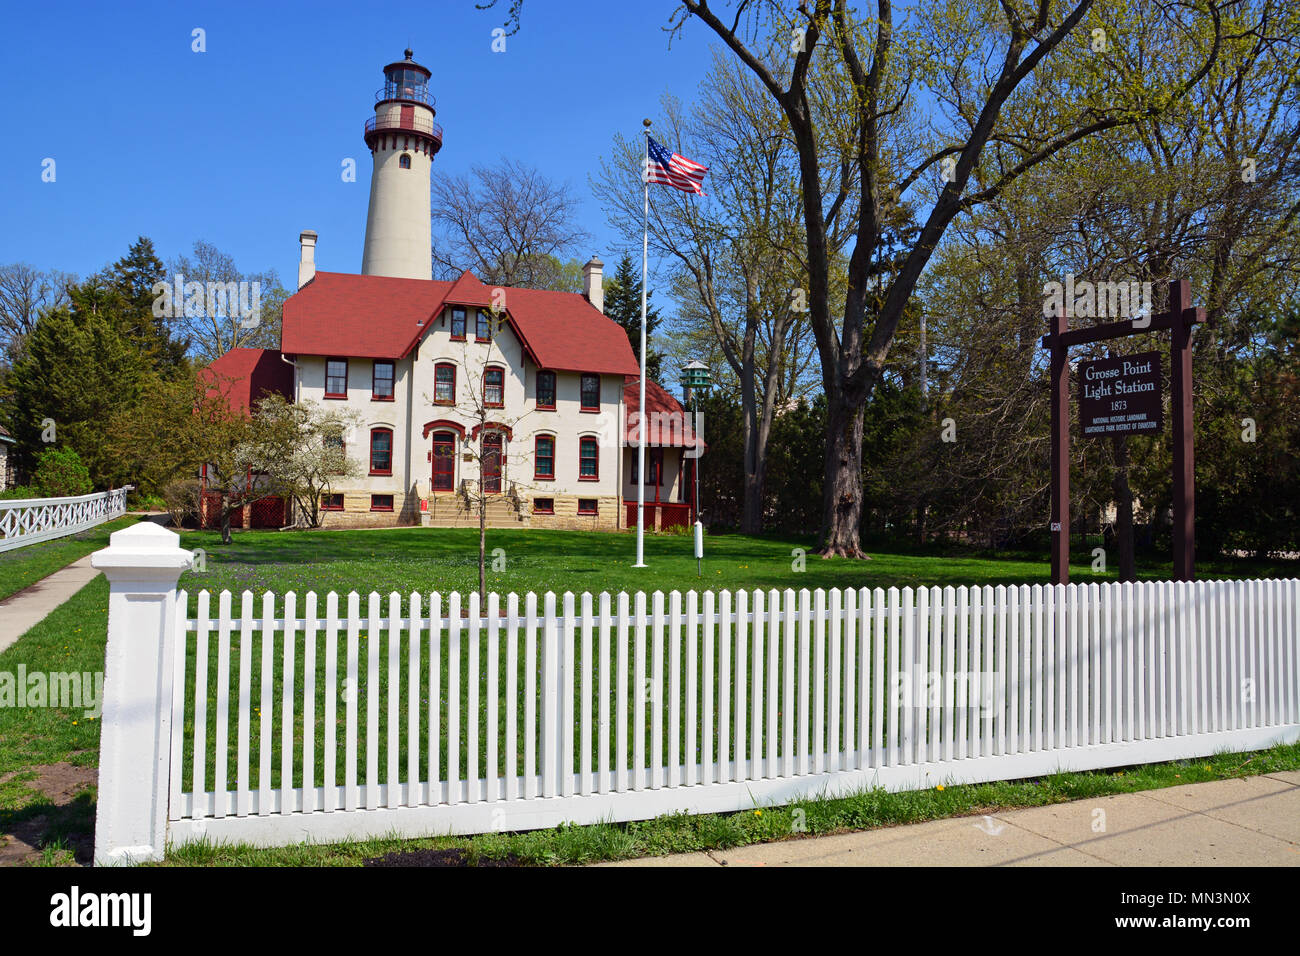 The Grosse Point Light Station was dedicated in 1873 and guided shipping on Lake Michigan off Evanston IL. Today the lighthouse is a maritime museum. - Stock Image